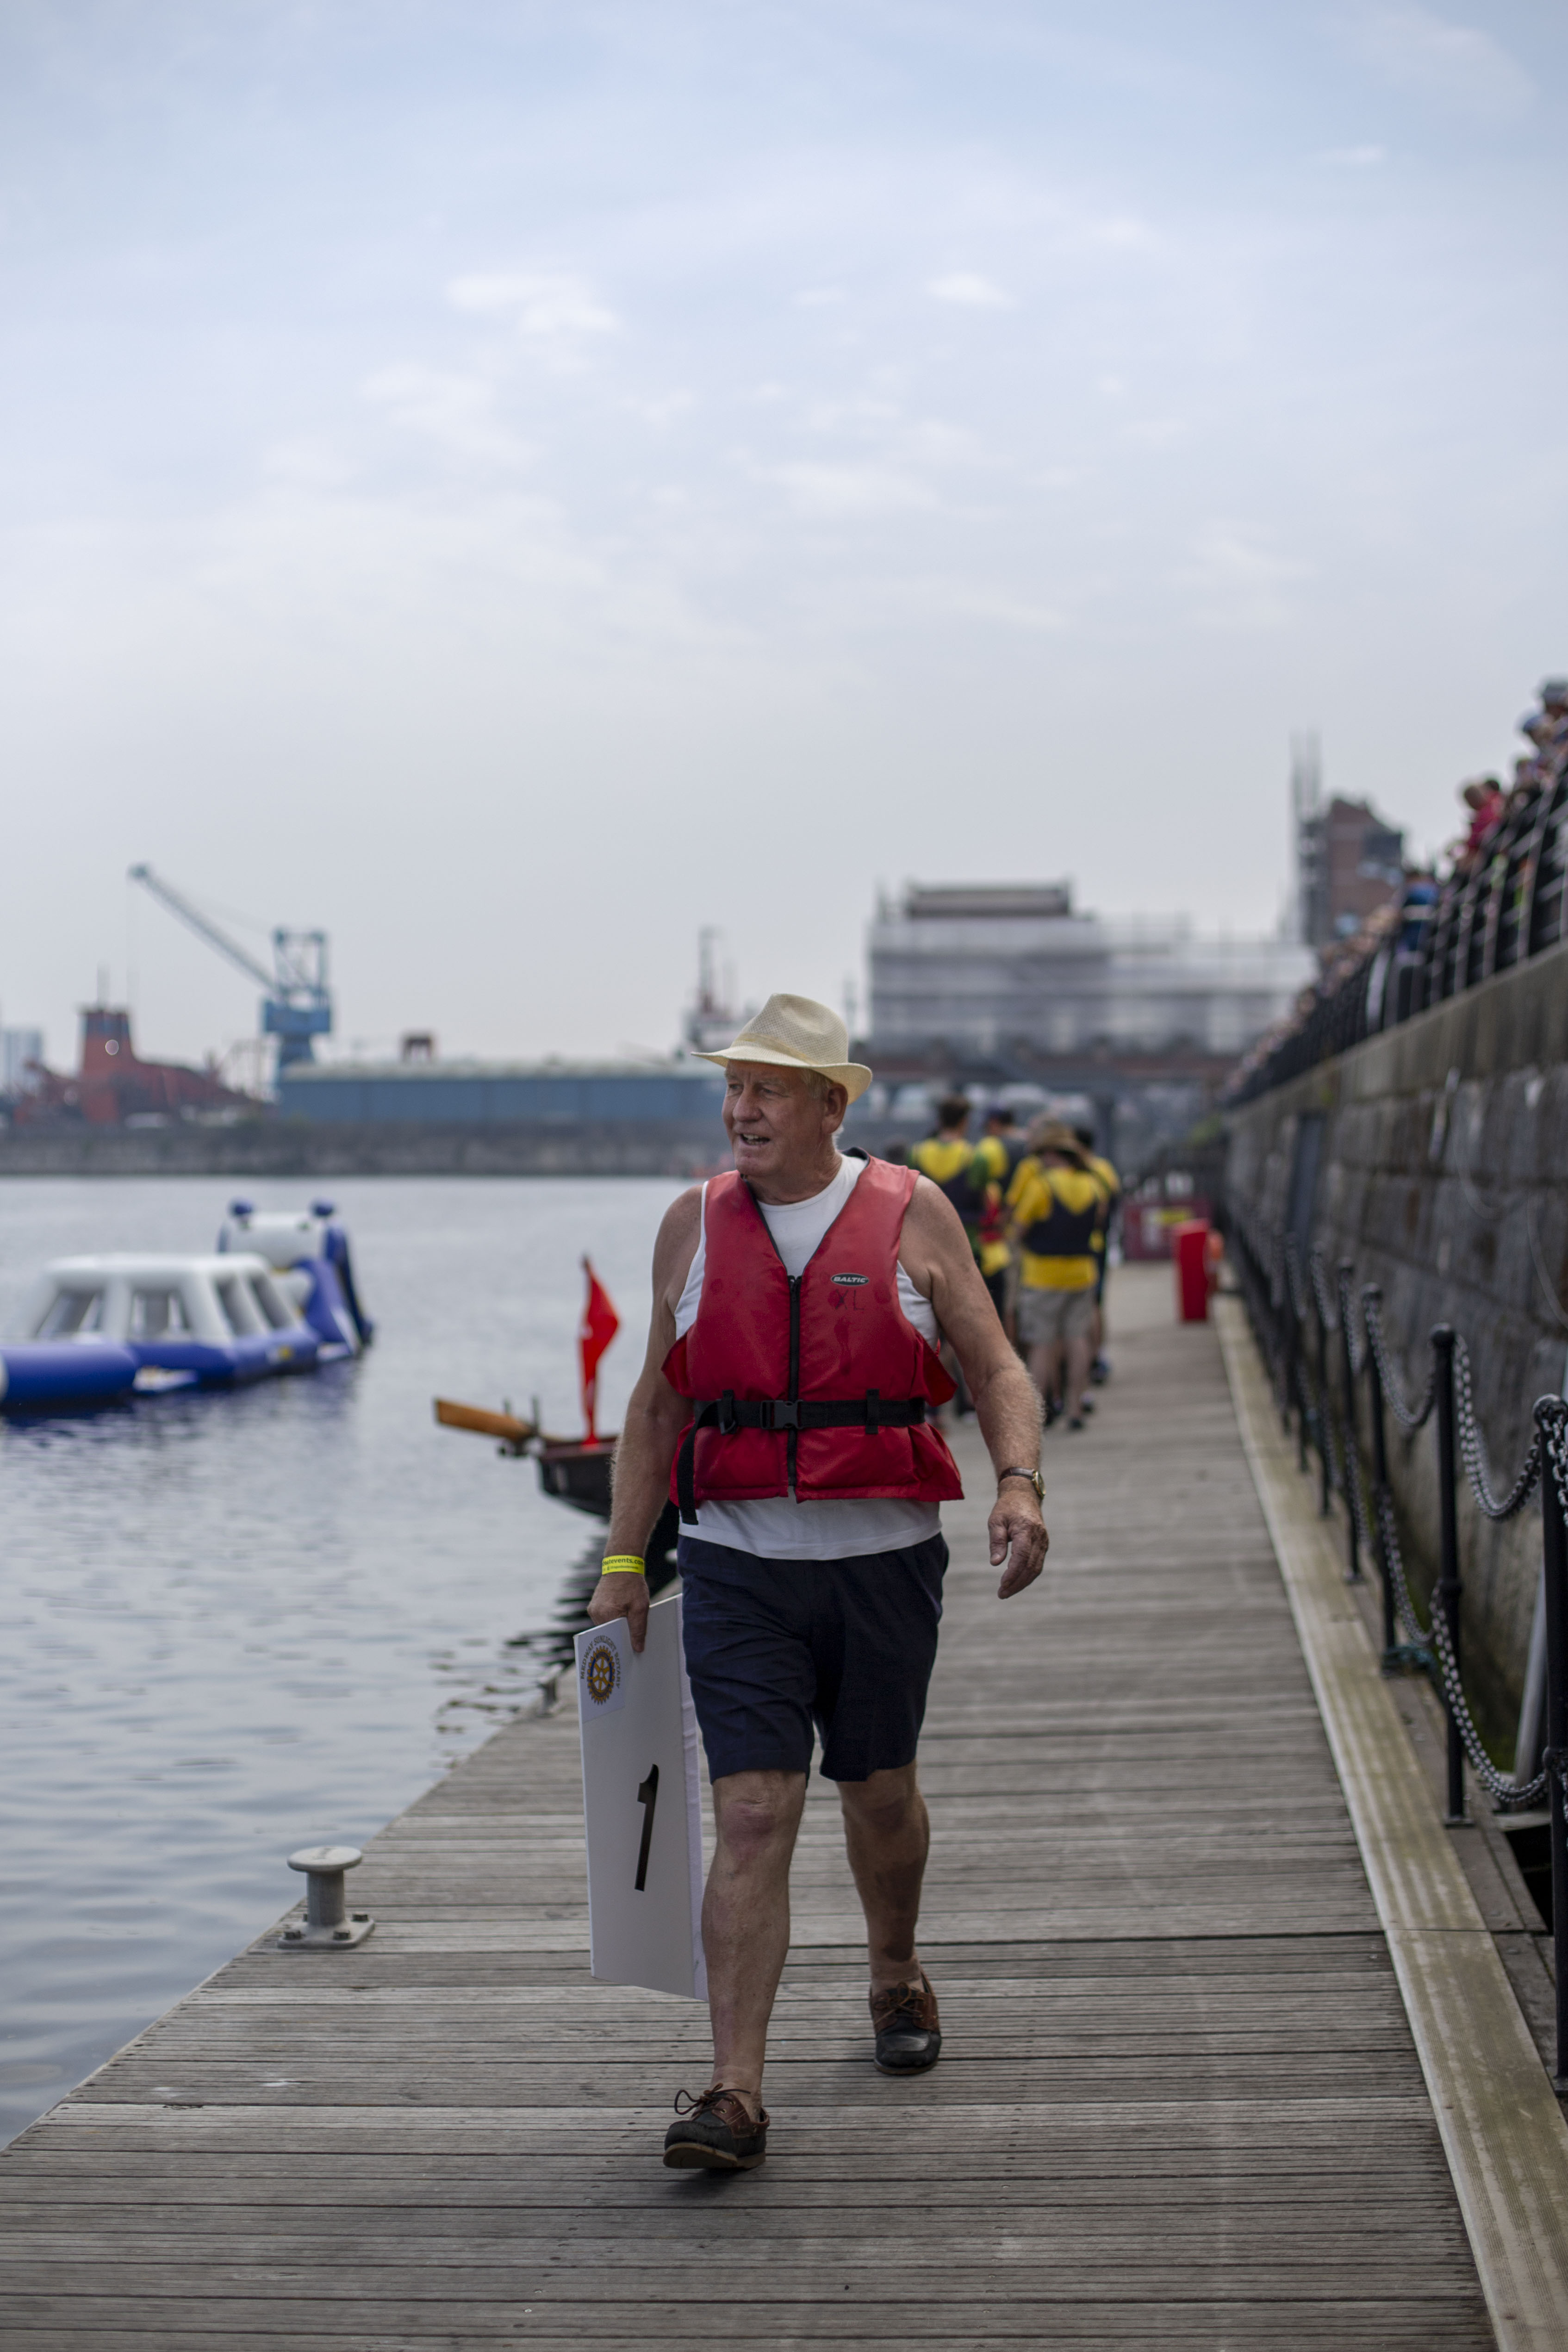 2018 Dragon Boat Challenge photos - 270518 6D 5323 Edited